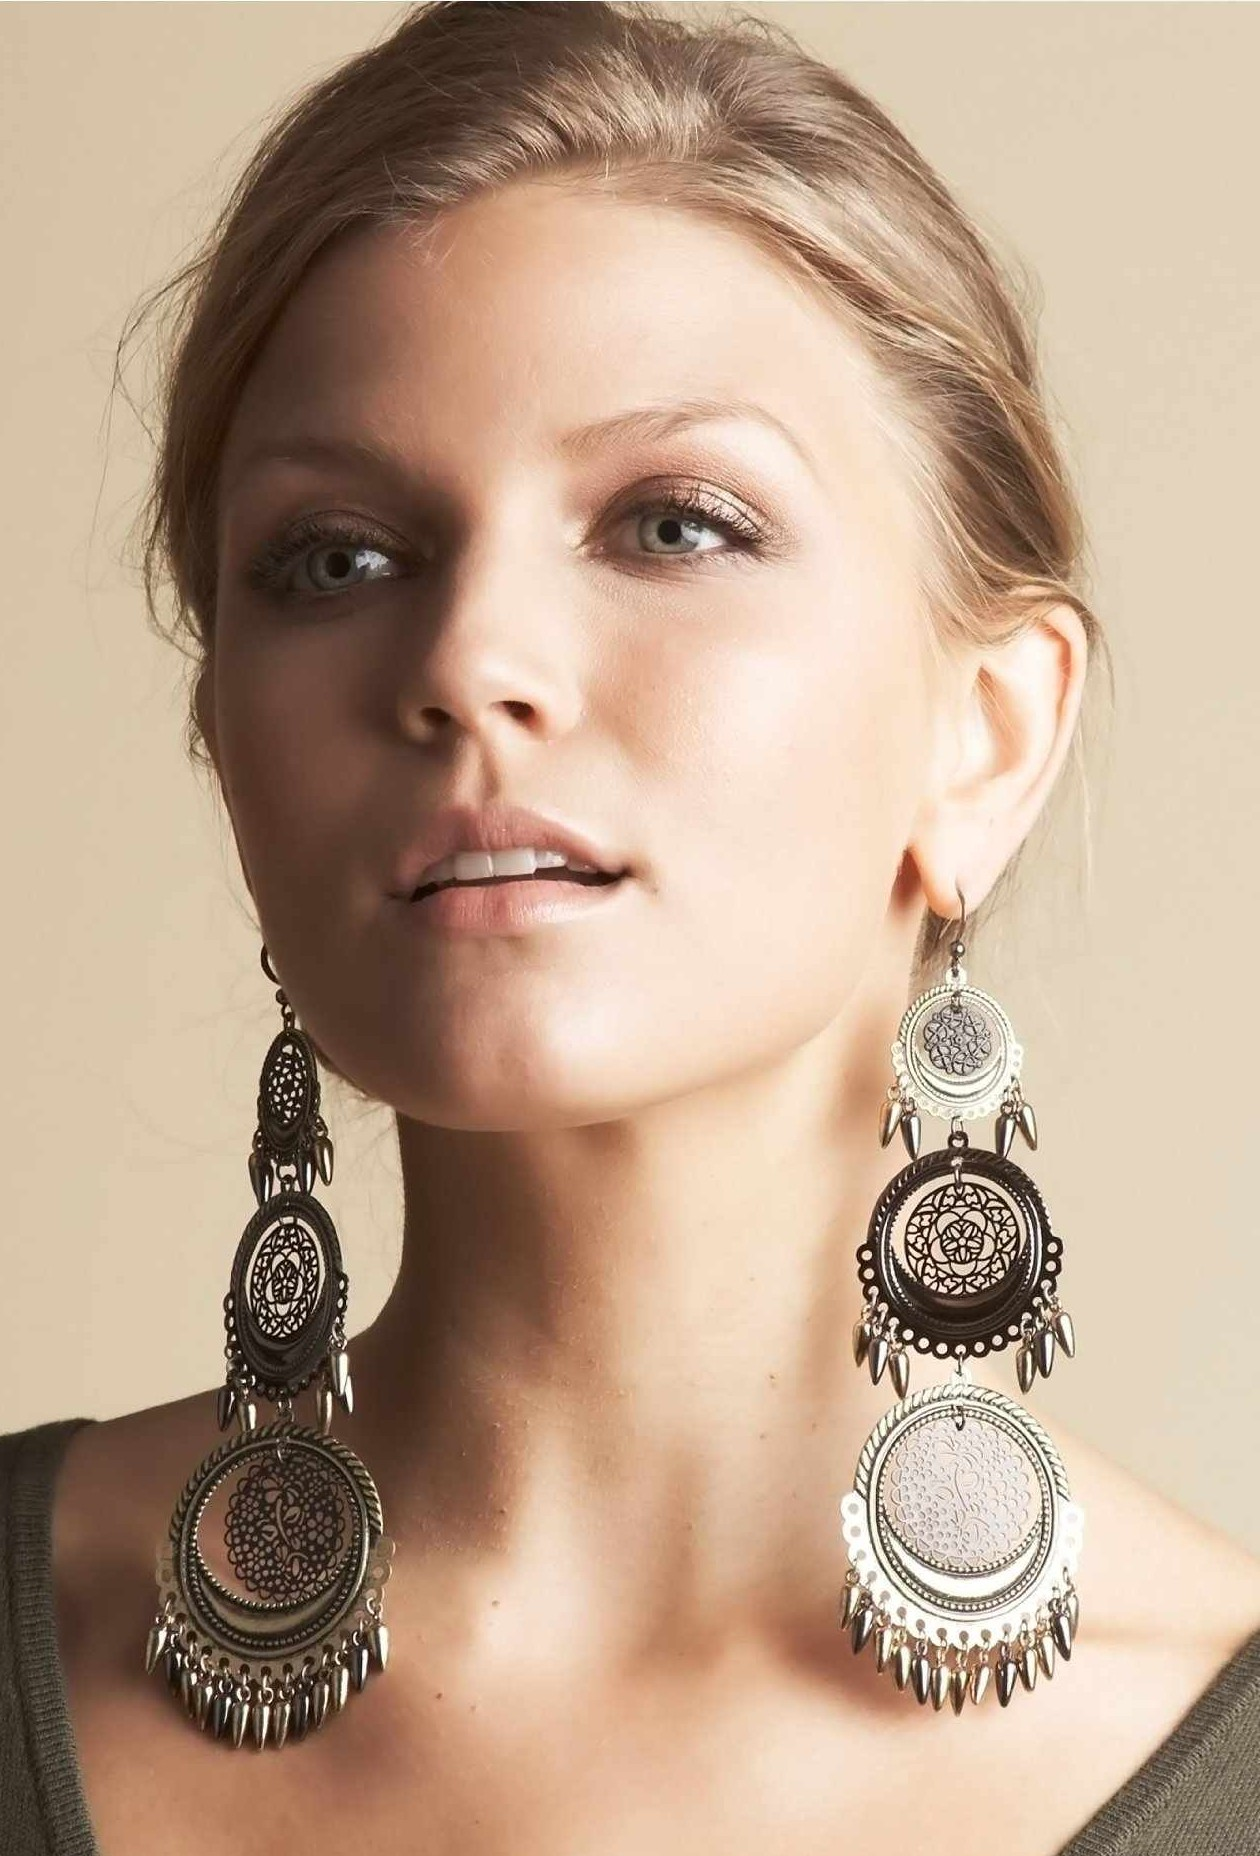 portrait with beautiful diamond image fashion girl photo woman earrings jewelry gorgeous stock